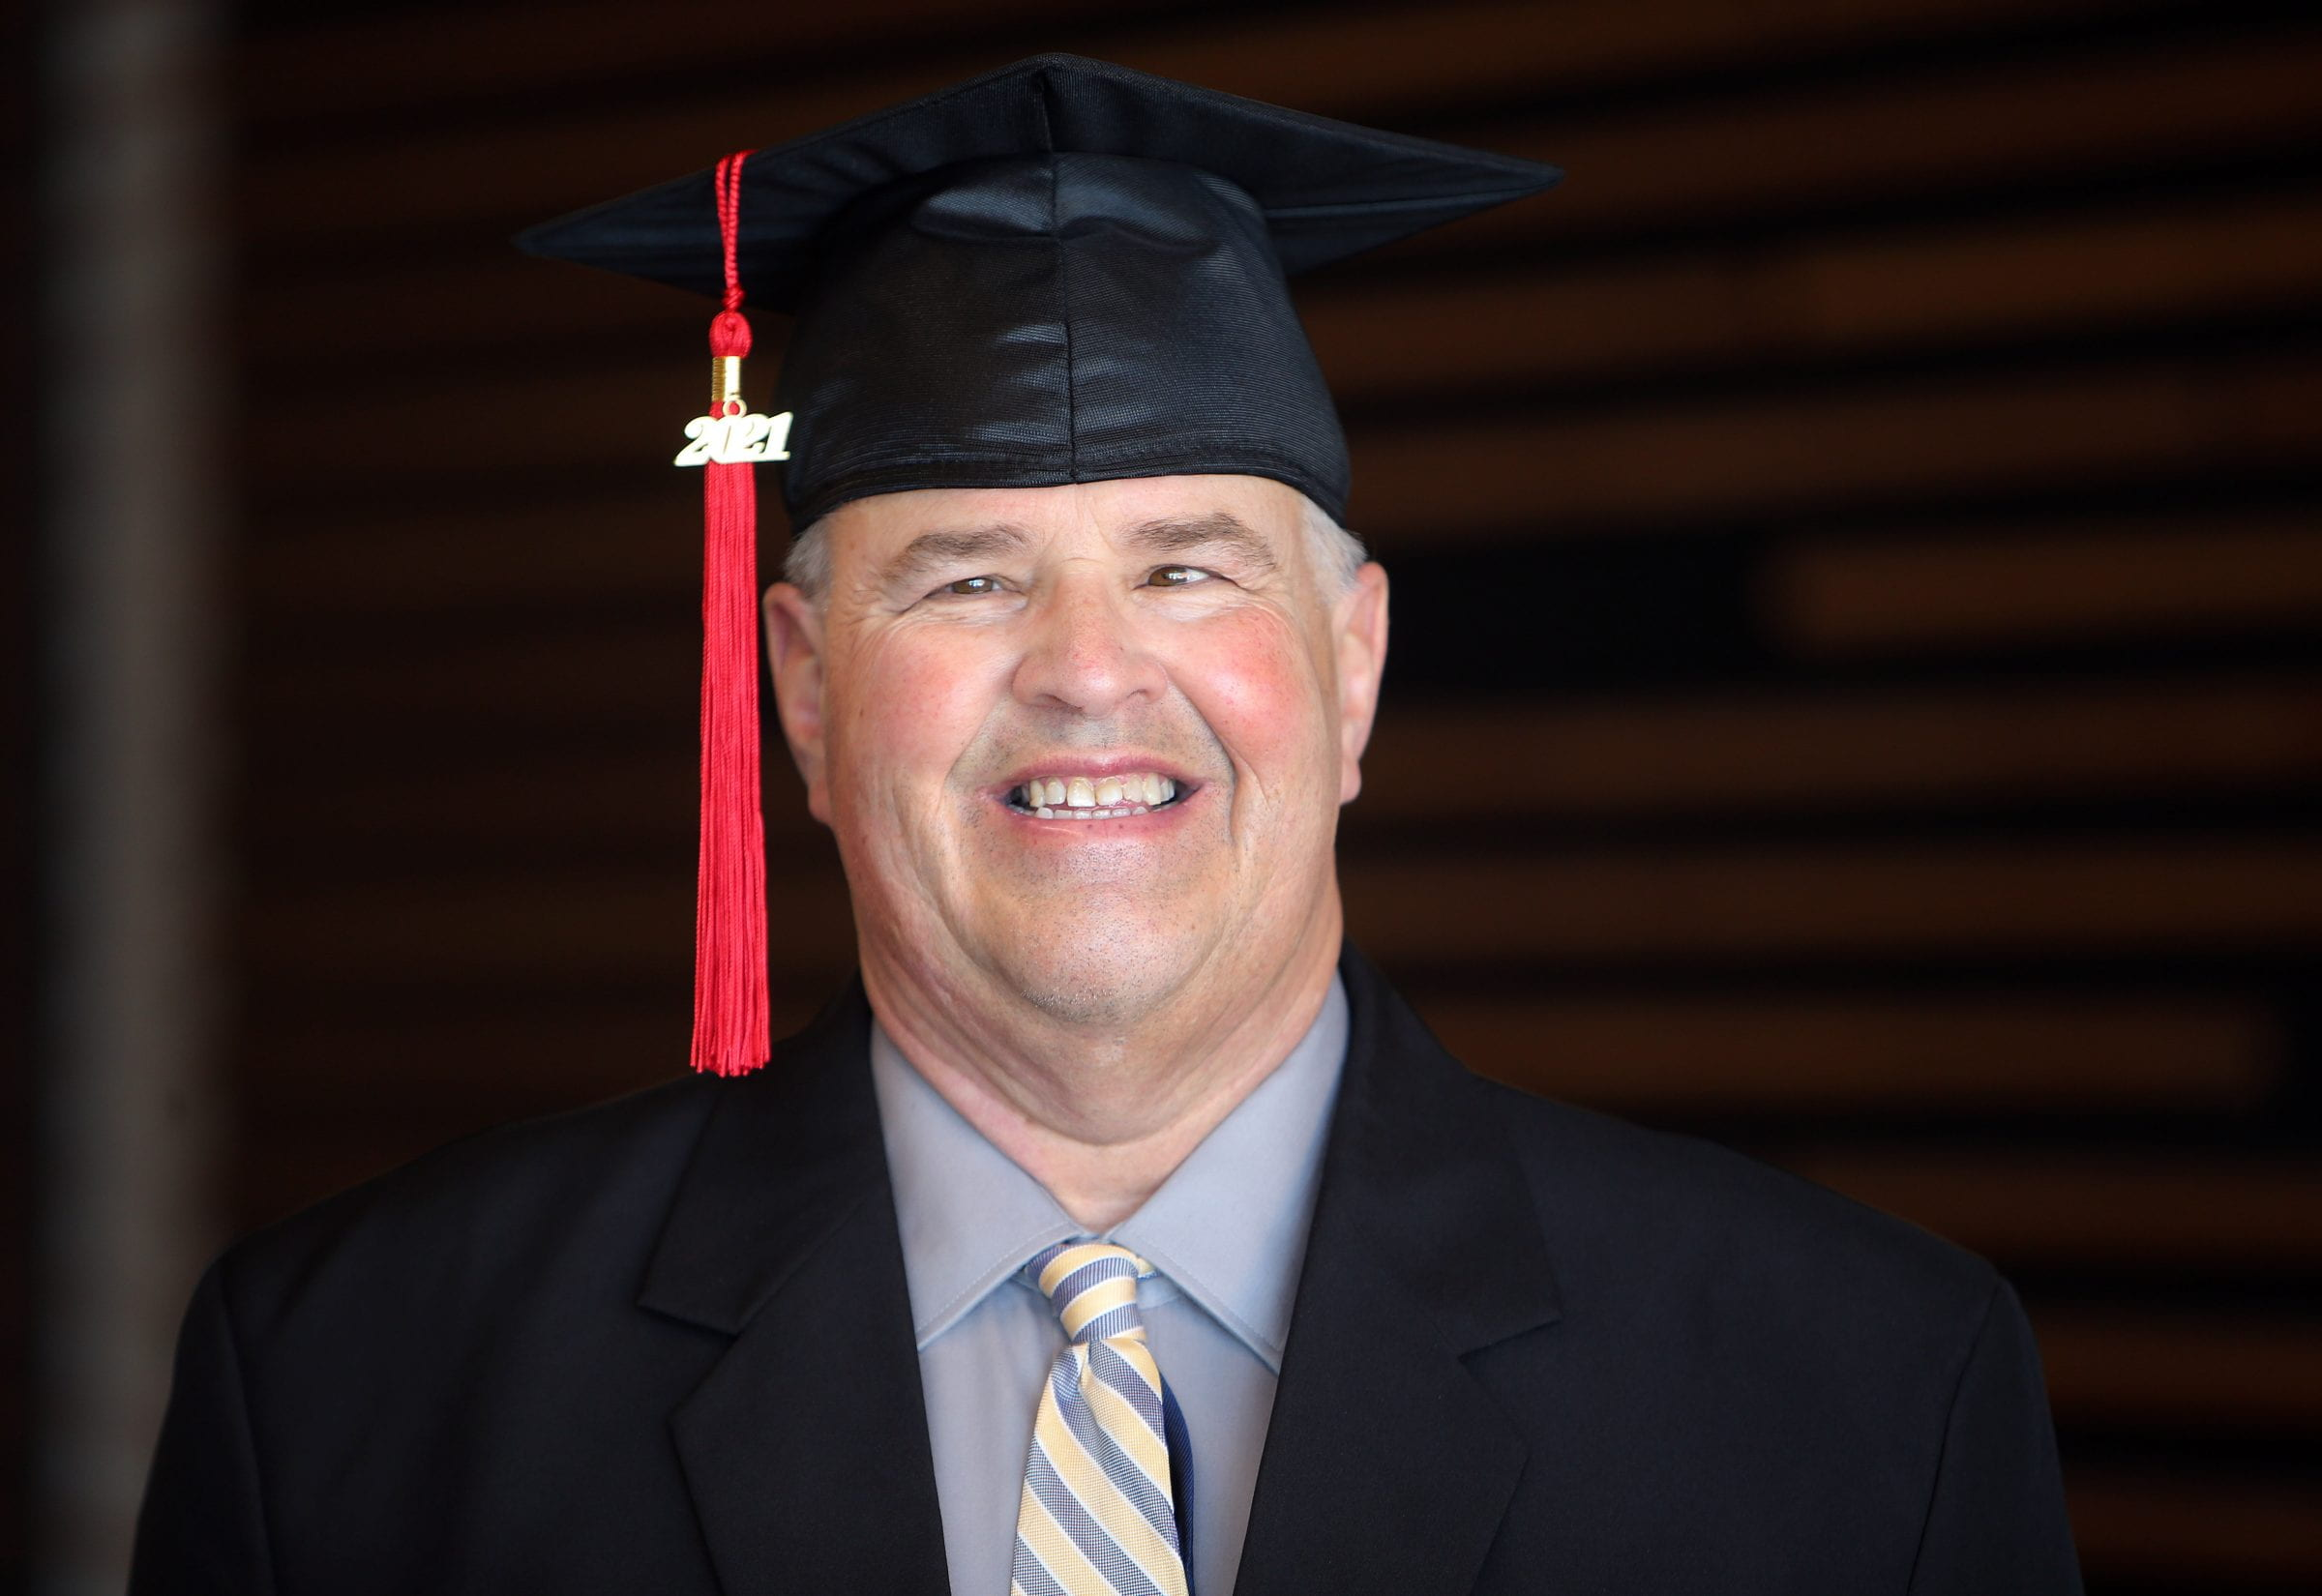 Red River College Polytechnic Honorary Diploma recipient Gabriel Langlois in graduation cap with tassel